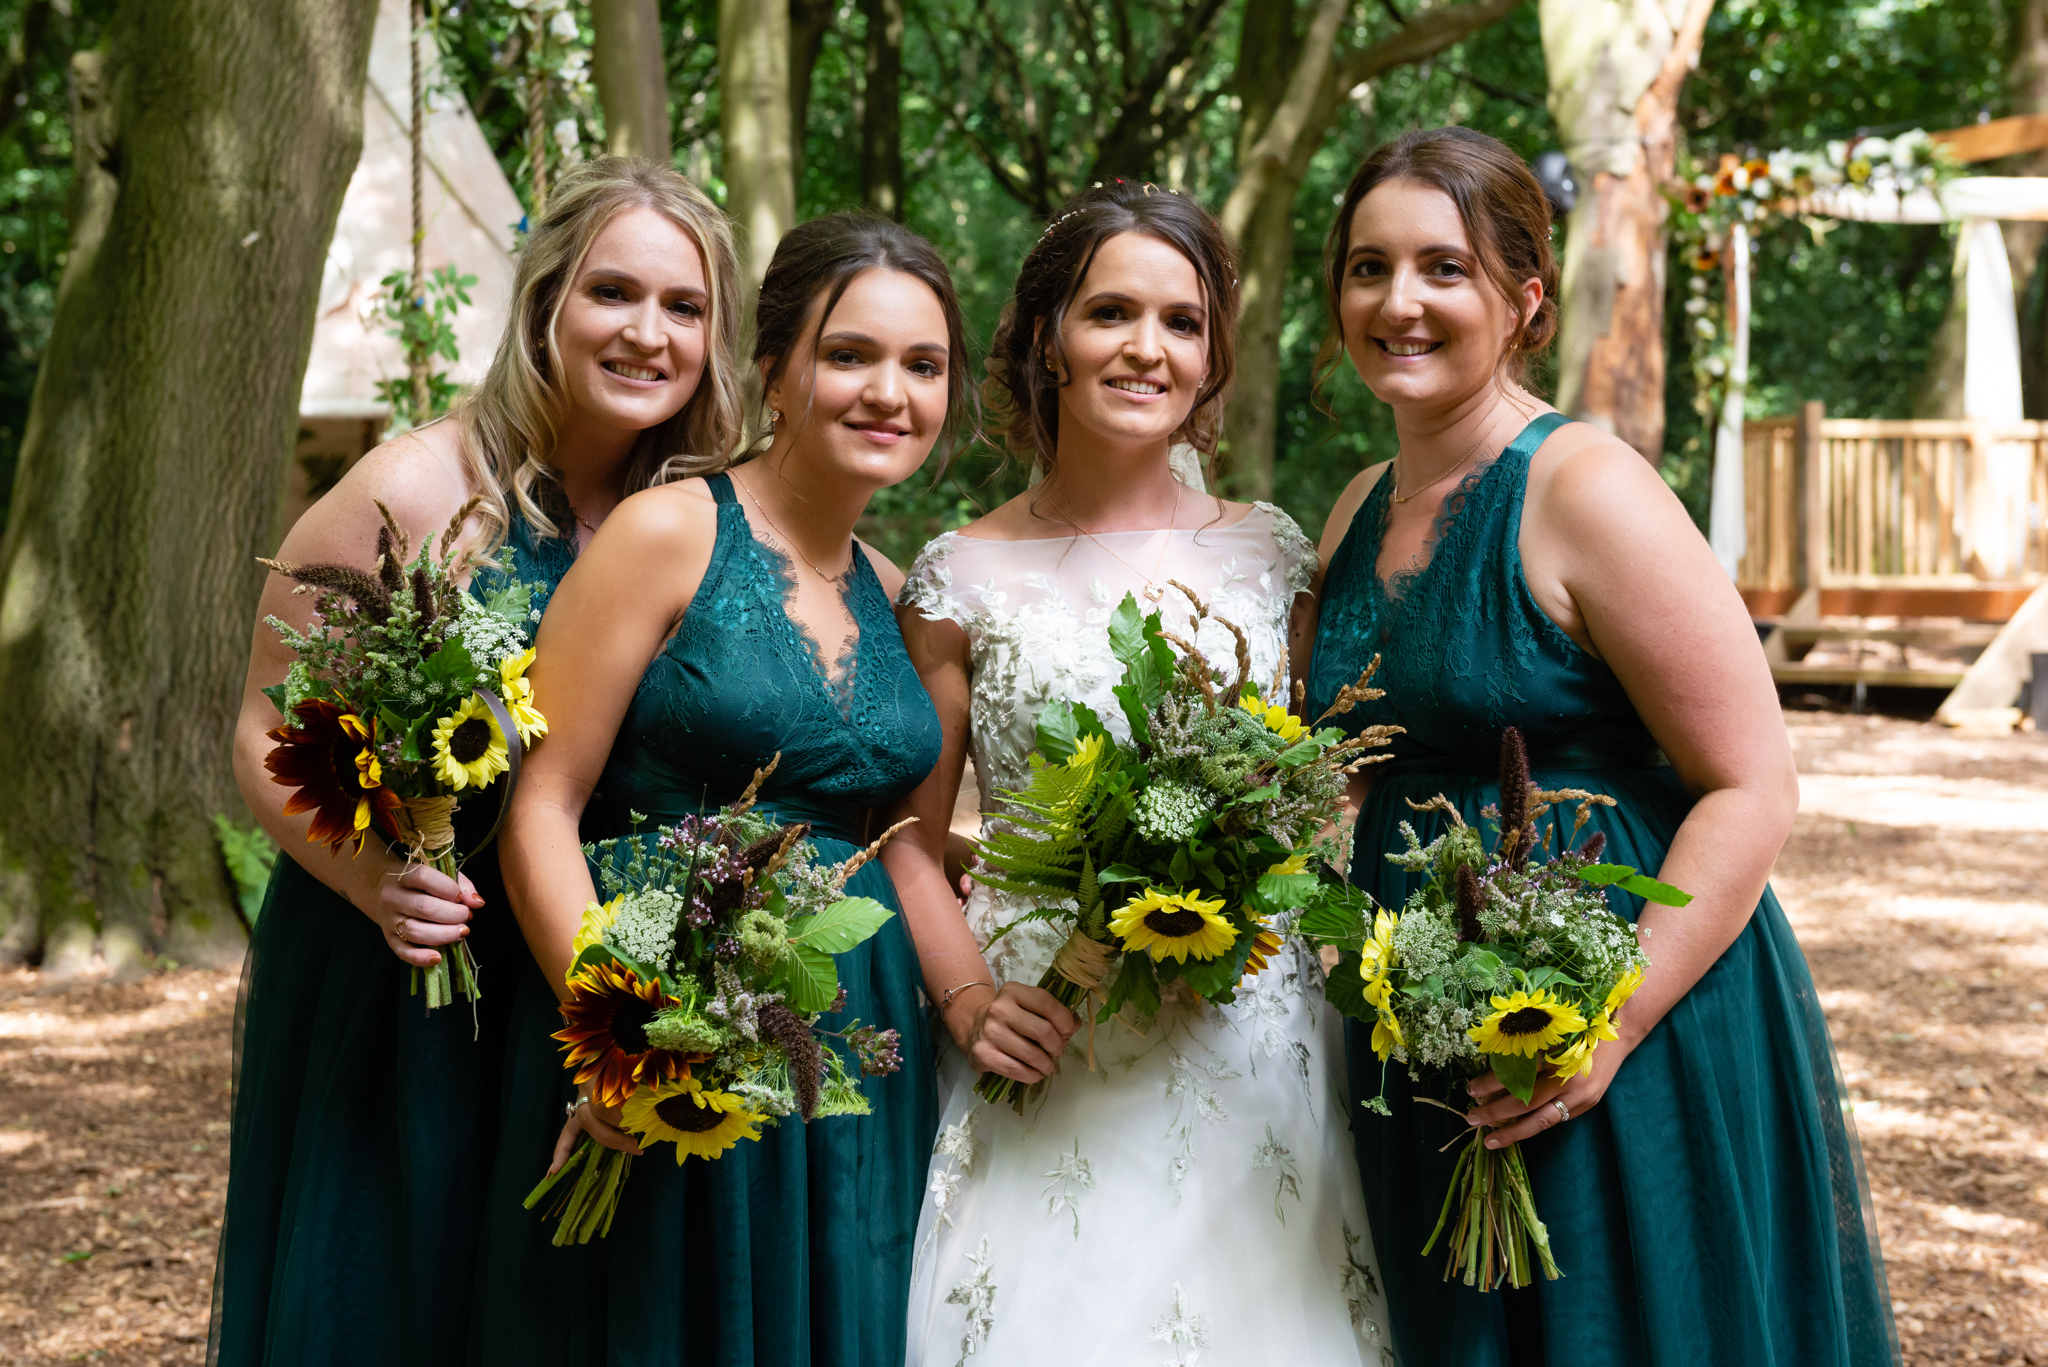 The bride and her bridesmaids at her woodland wedding